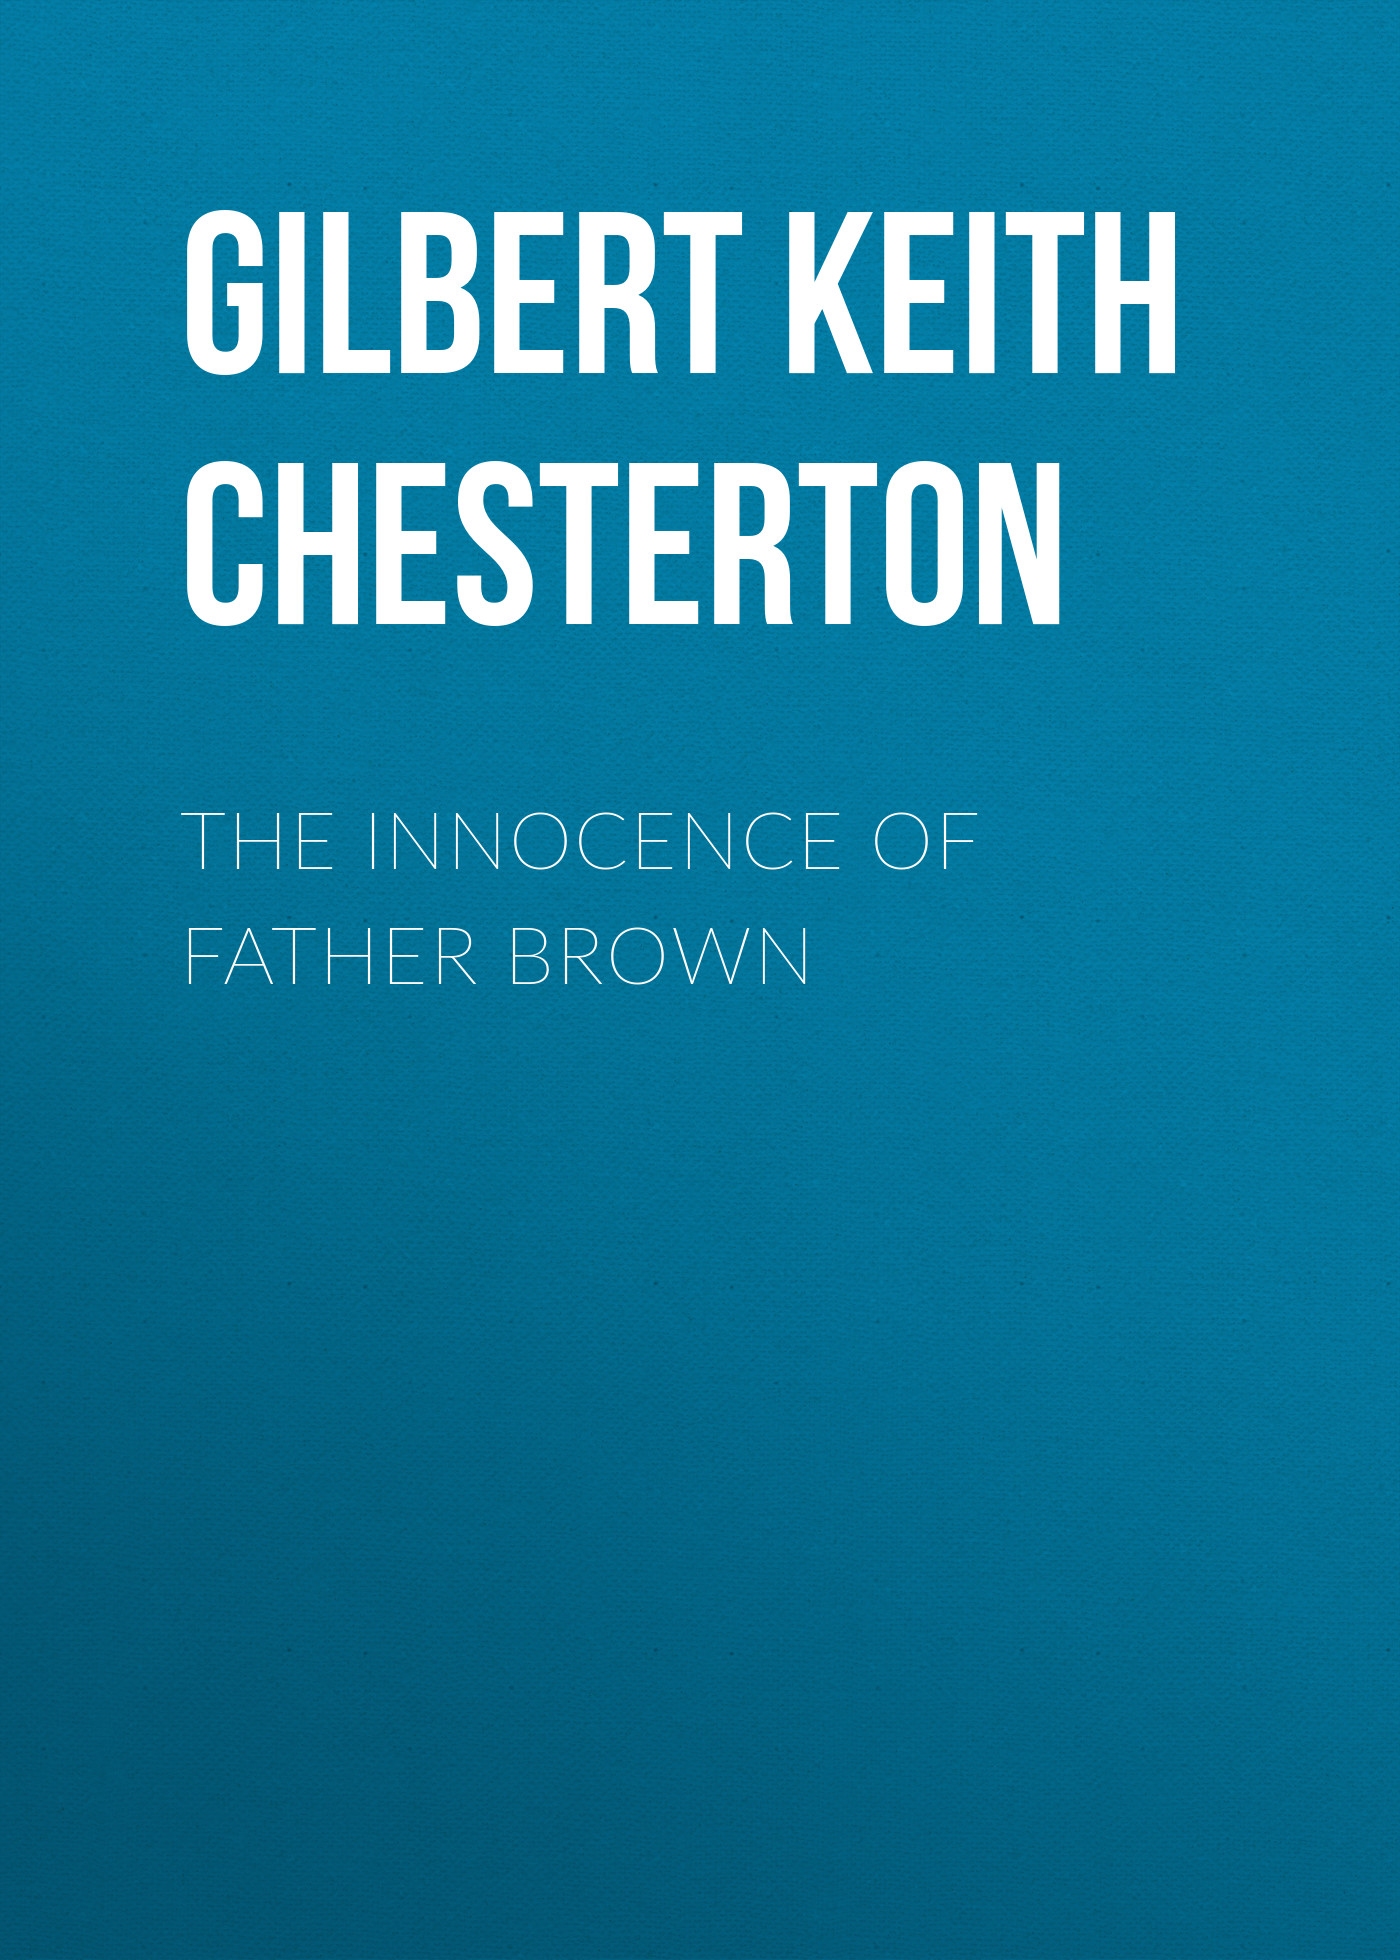 лучшая цена Gilbert Keith Chesterton The Innocence of Father Brown